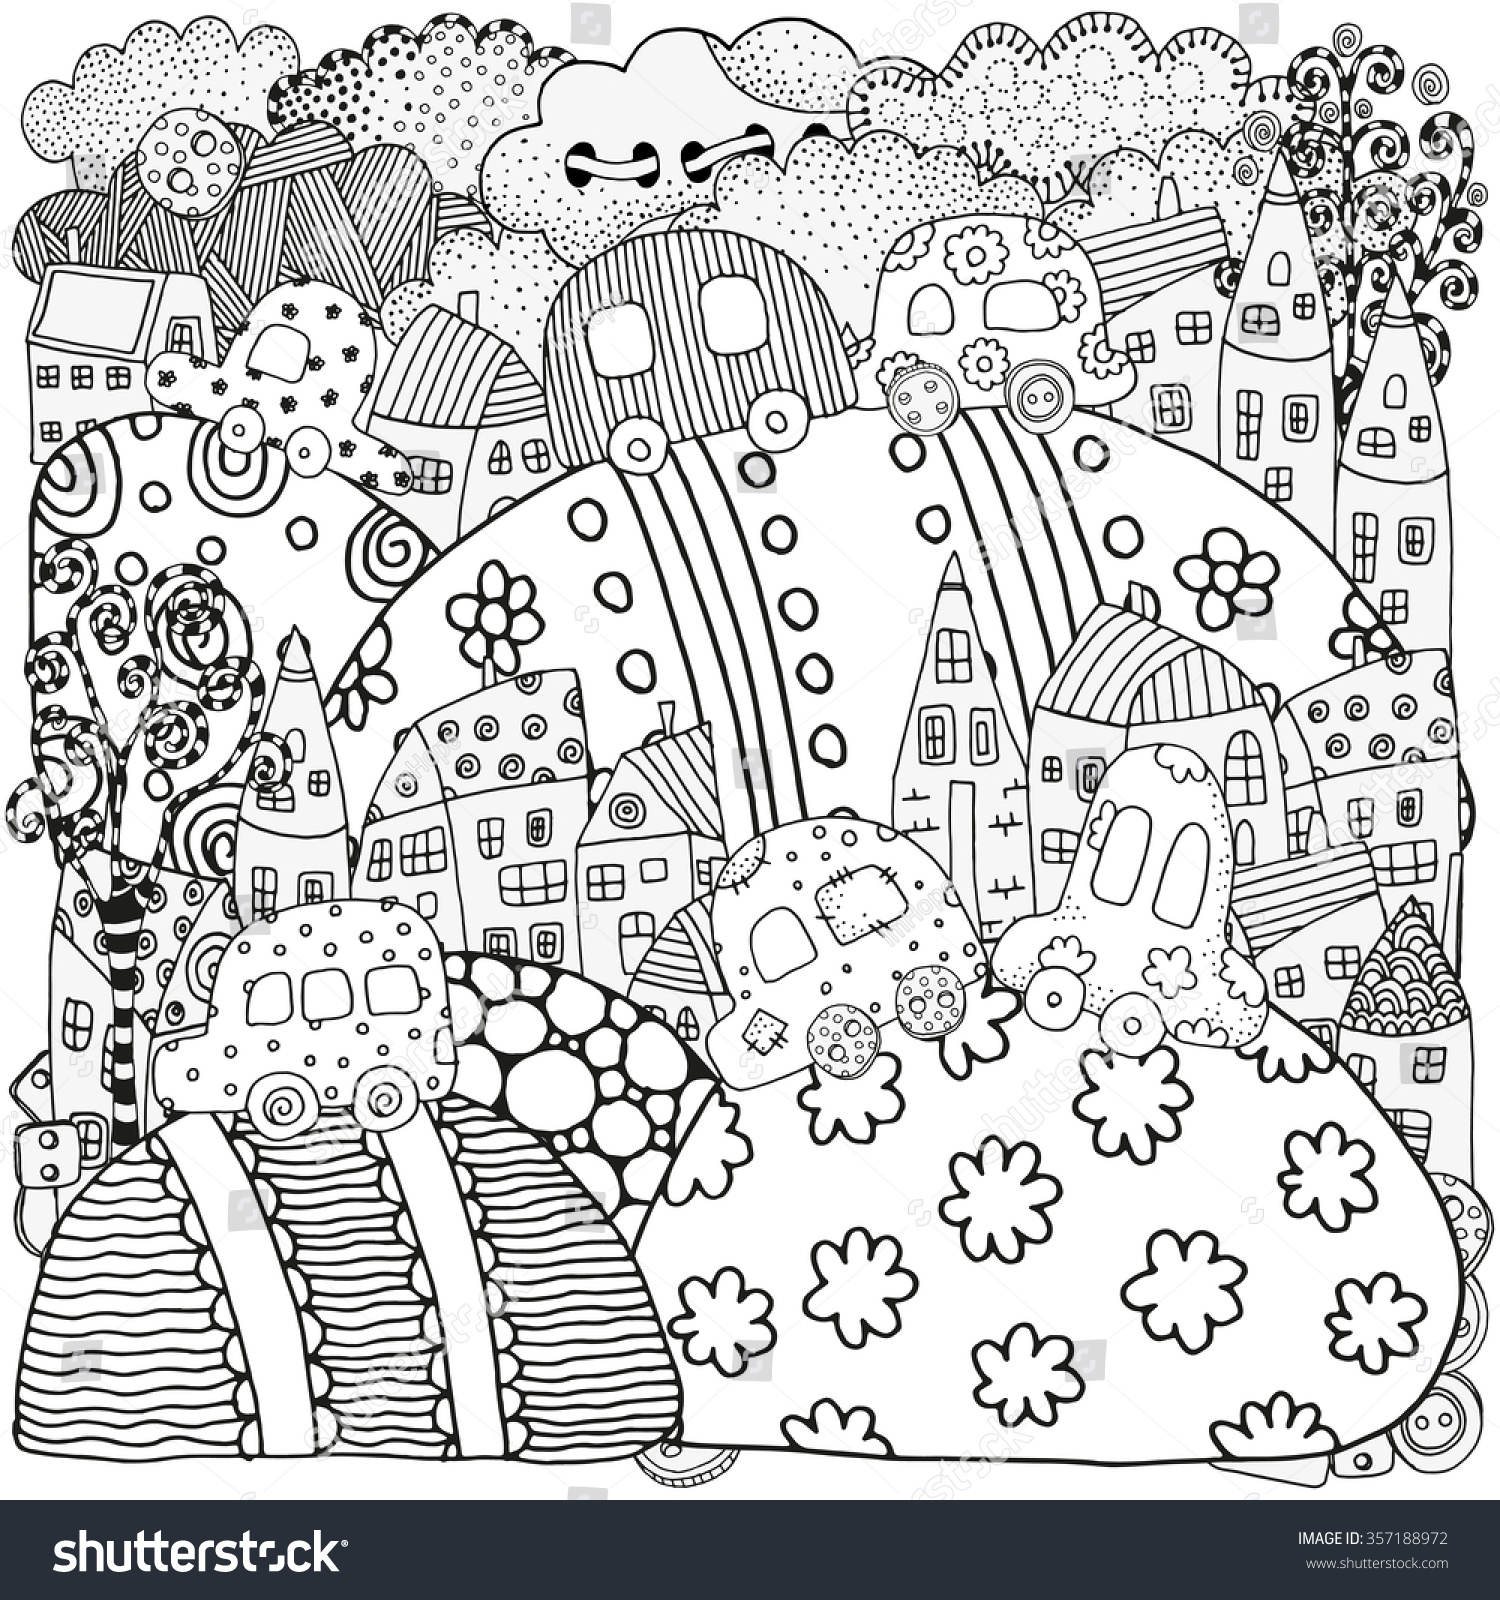 Th the magical city colouring in book - Pattern For Coloring Book With Artistically Houses And Cars Magic City Fields Landscape